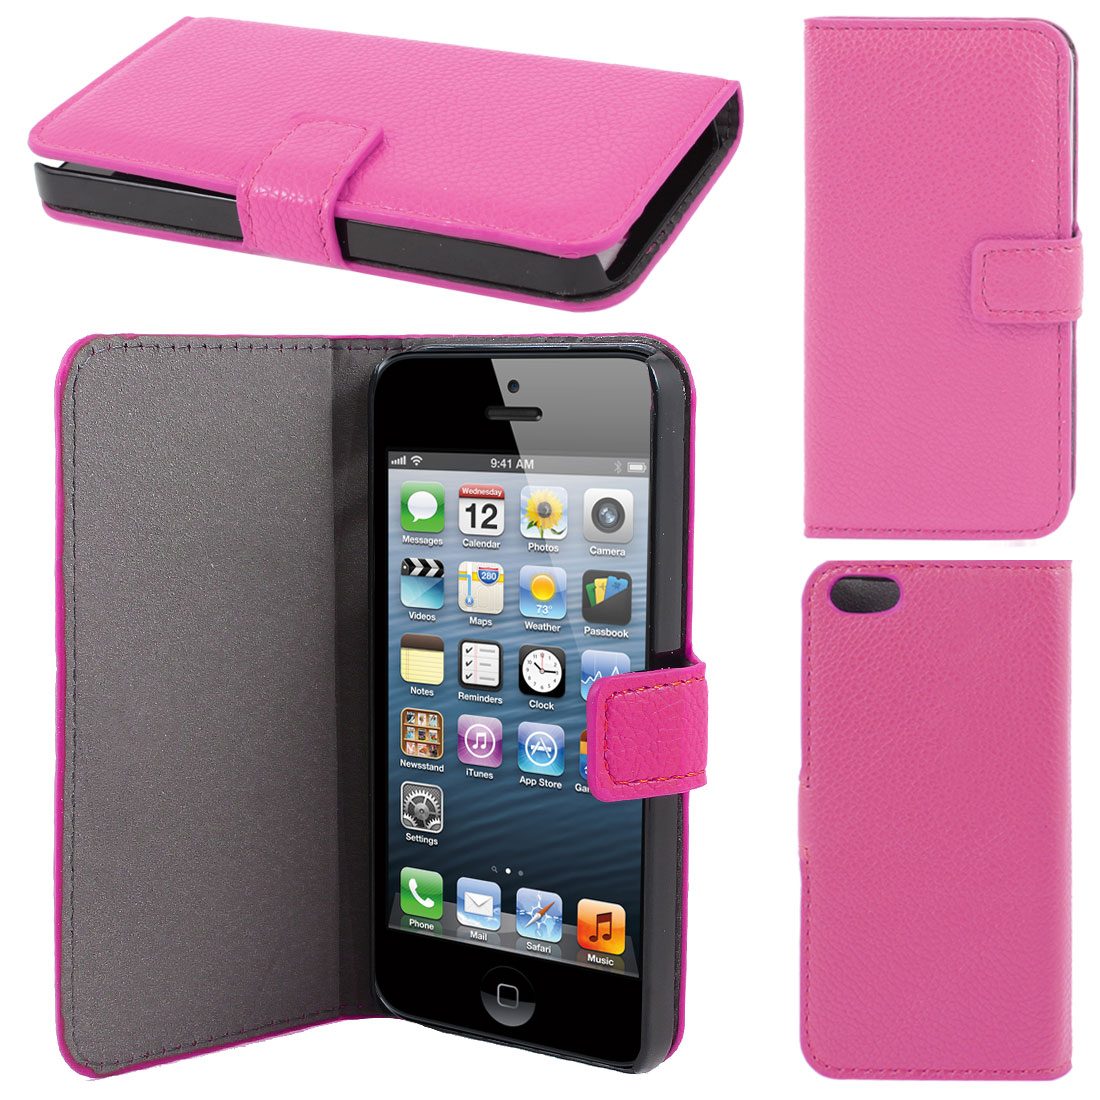 Fuchsia Litchi Pattern Faux Leather Flip Case Cover for Apple iPhone 5 5G